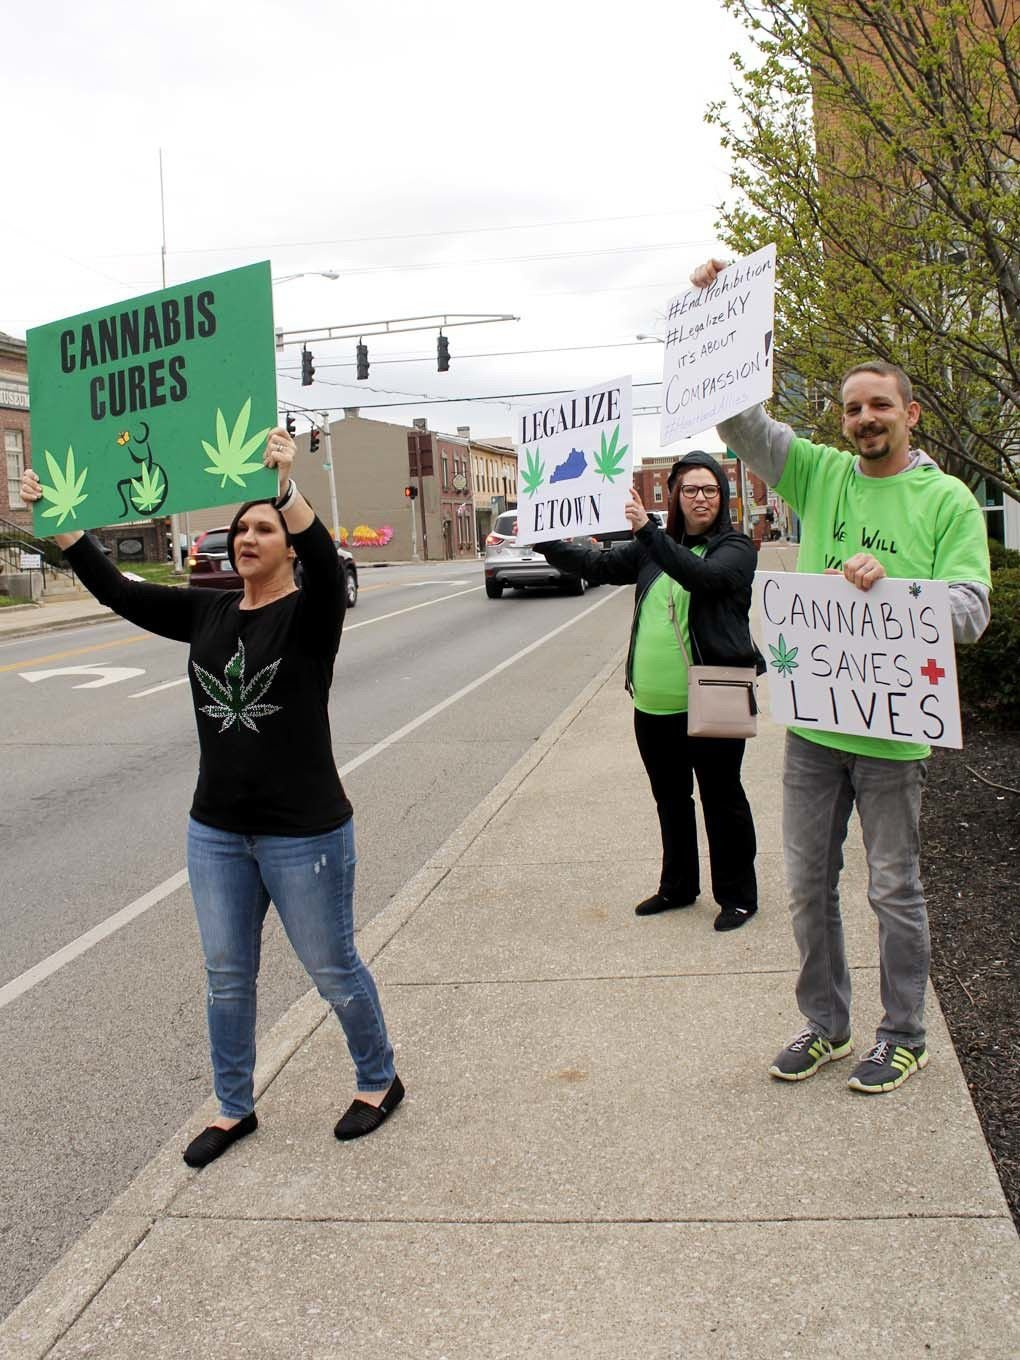 Residents show support for medical cannabis at Elizabethtown City Hall